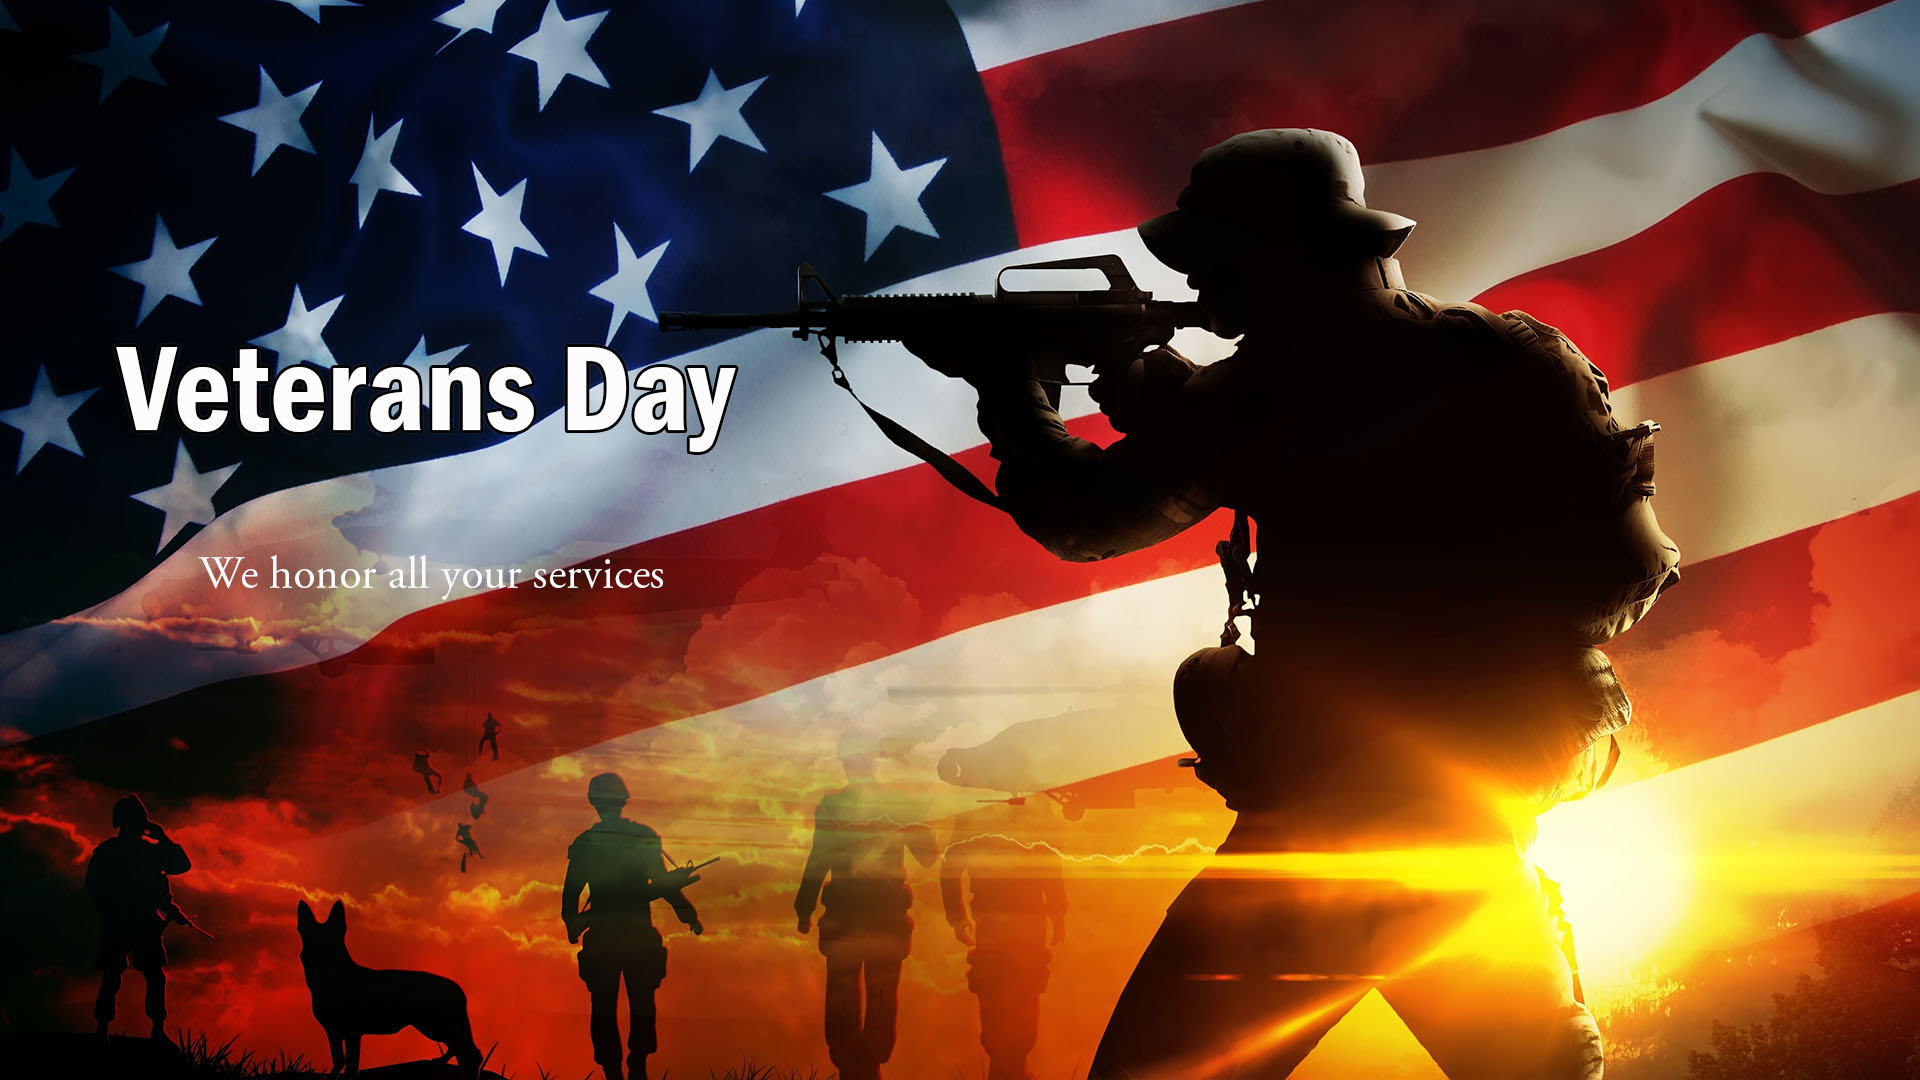 veterans-day-wallpaper-images-posters-2017